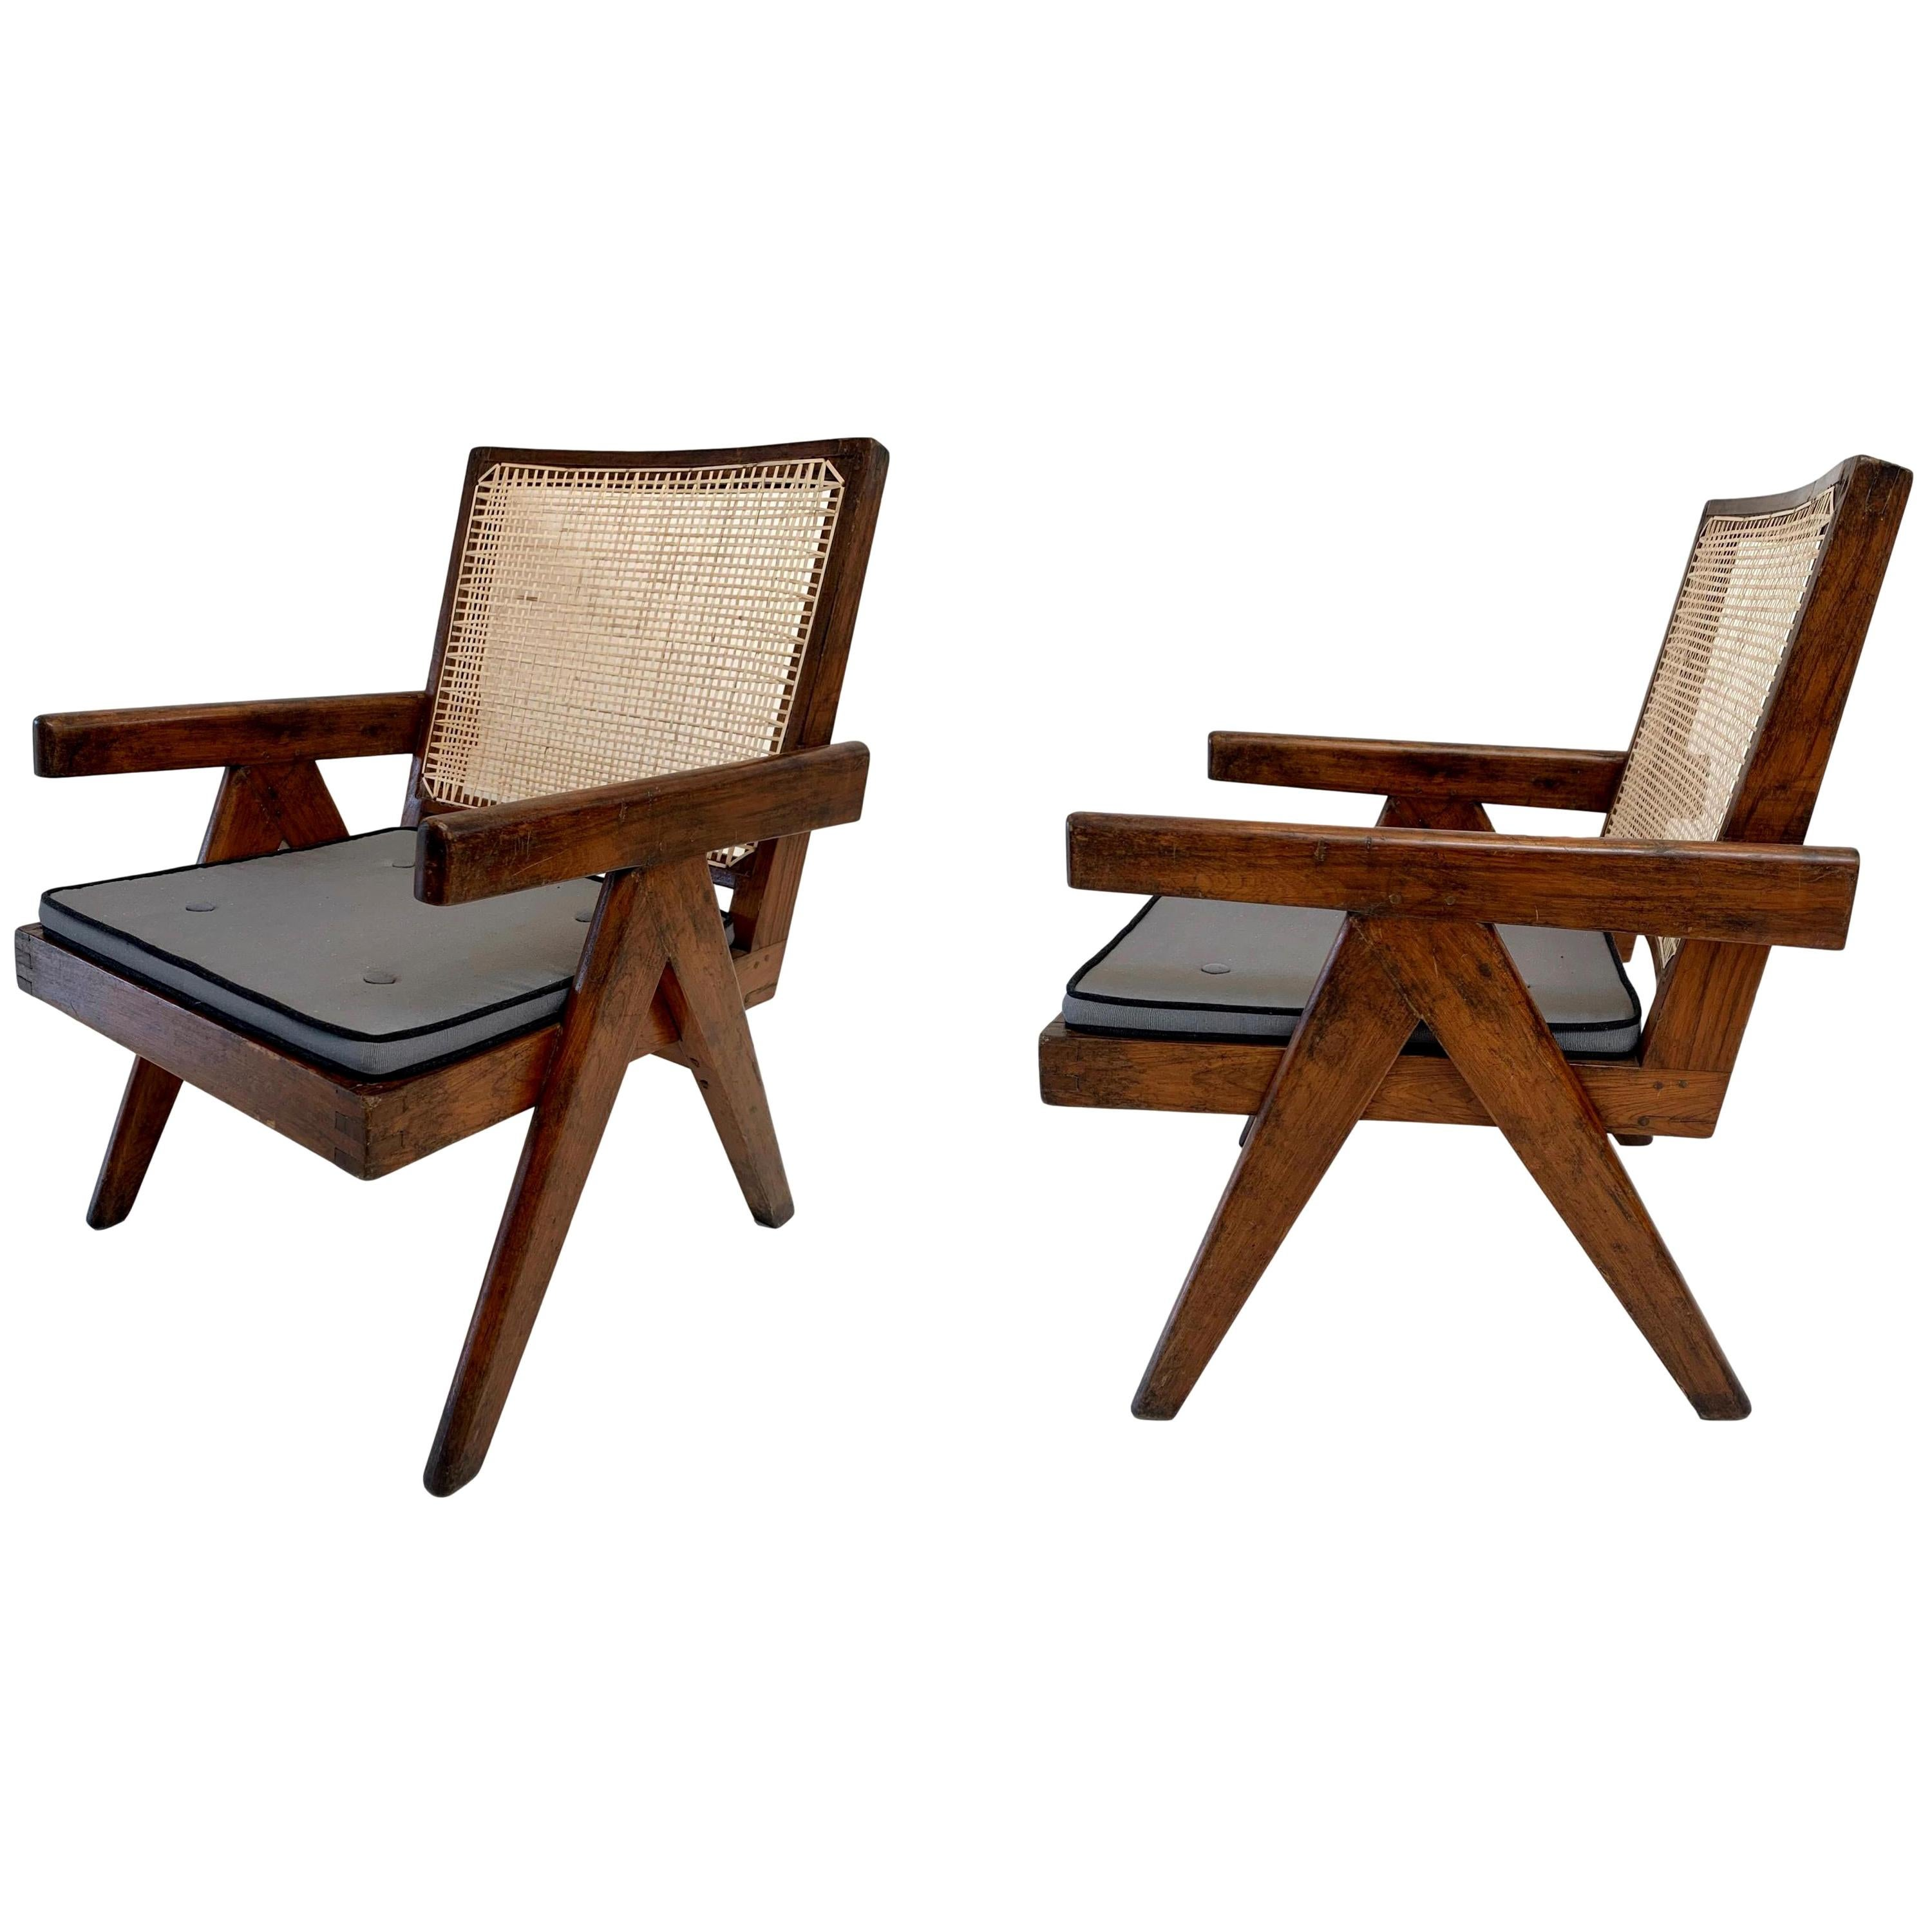 Pierre Jeanneret 'Easy' Chairs